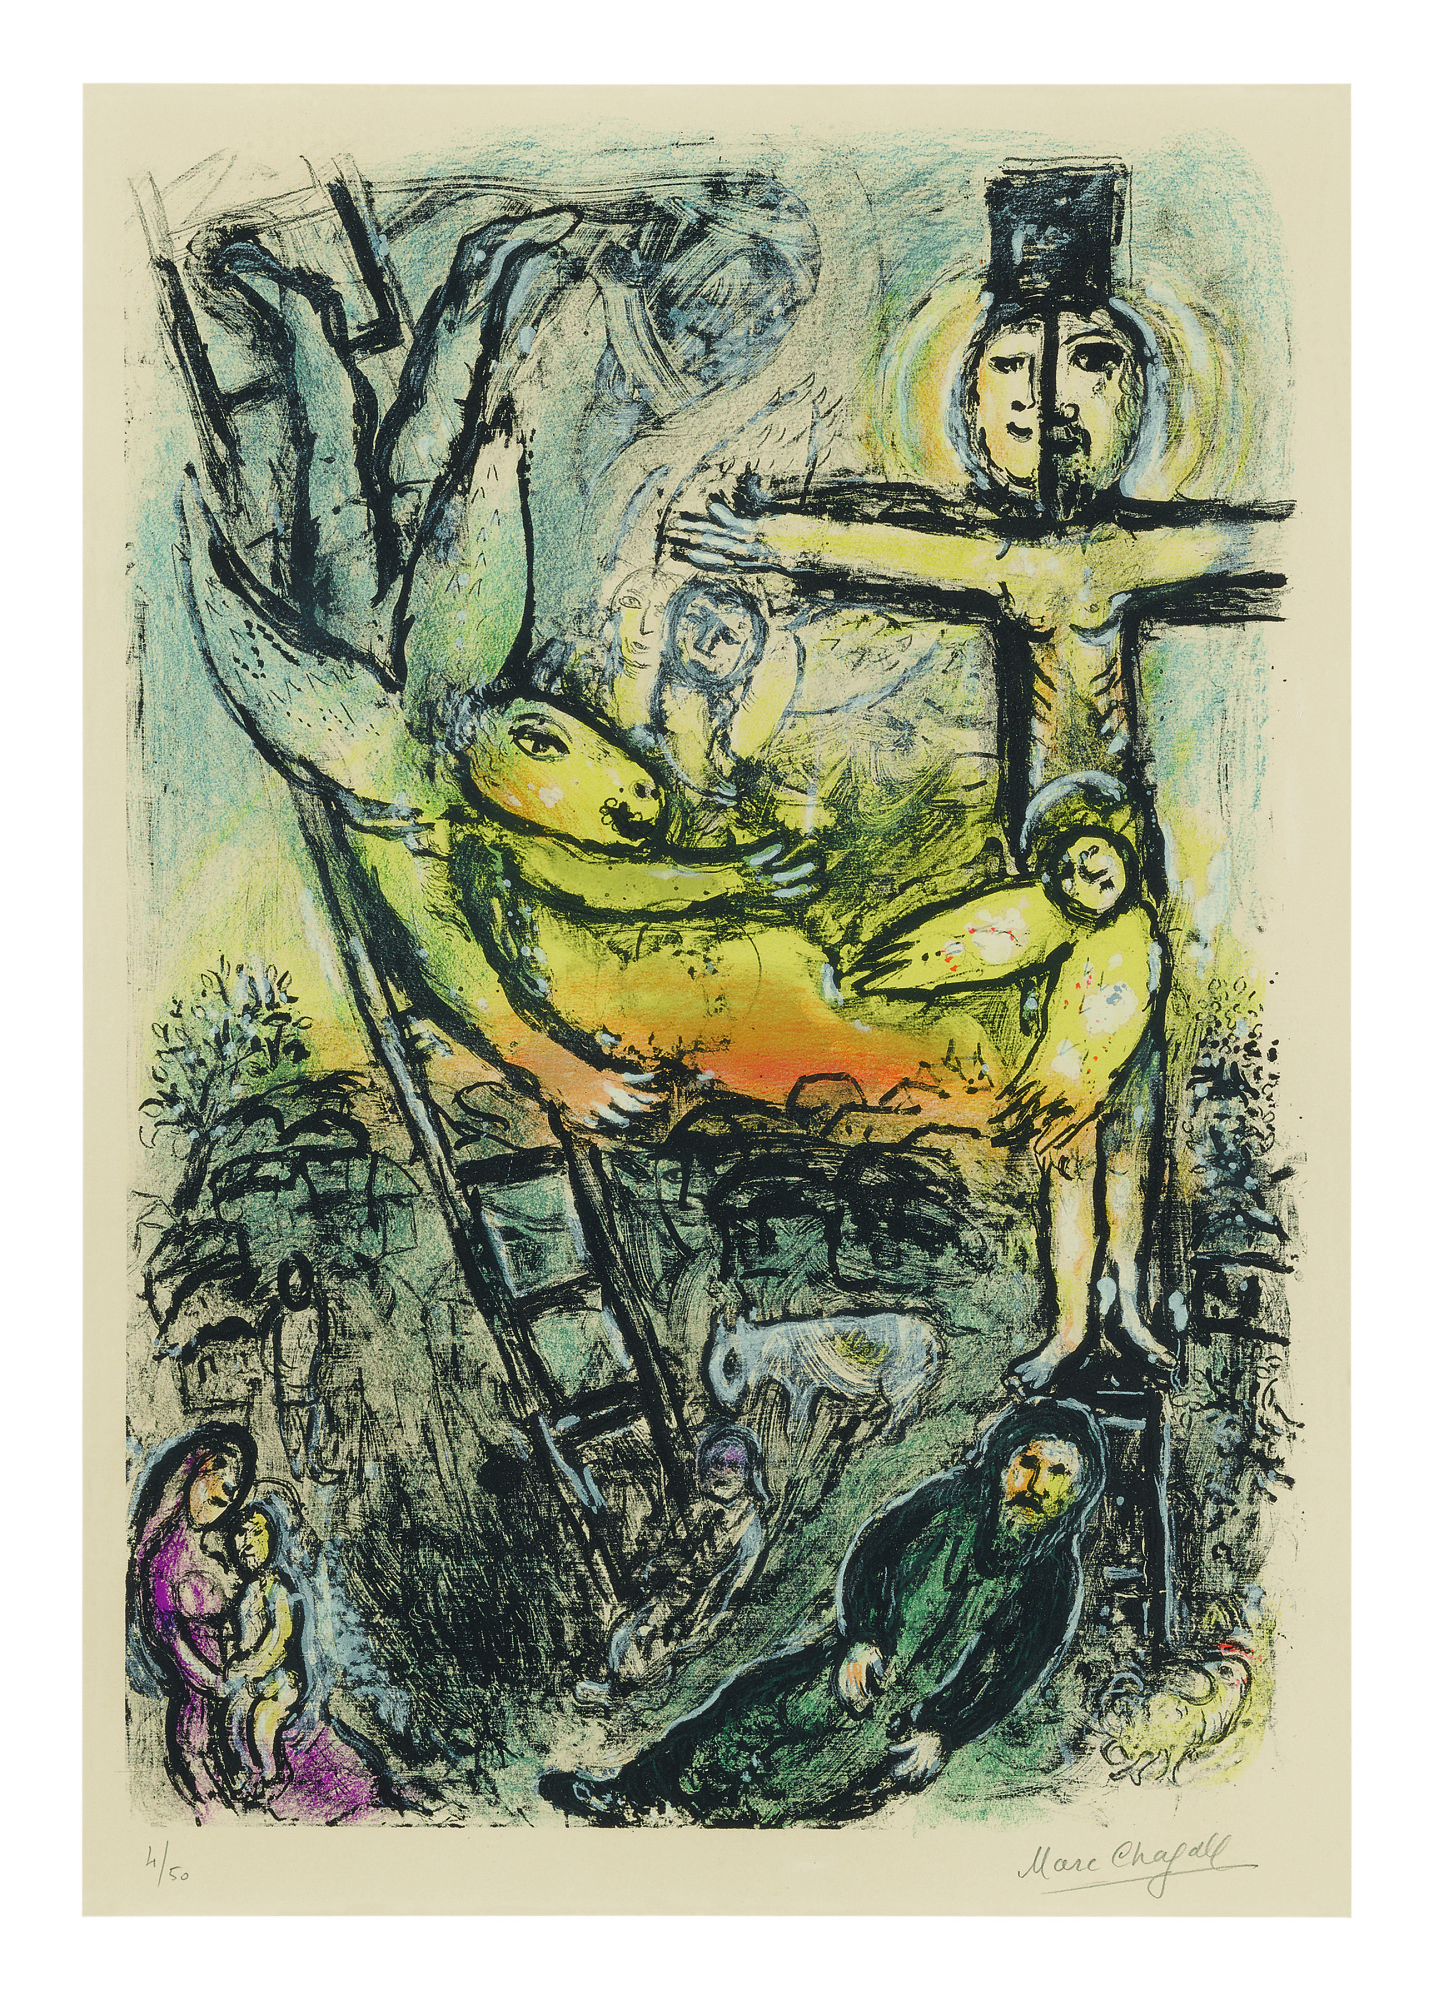 MARC CHAGALL | JACOB'S DREAM (MOURLOT 625)